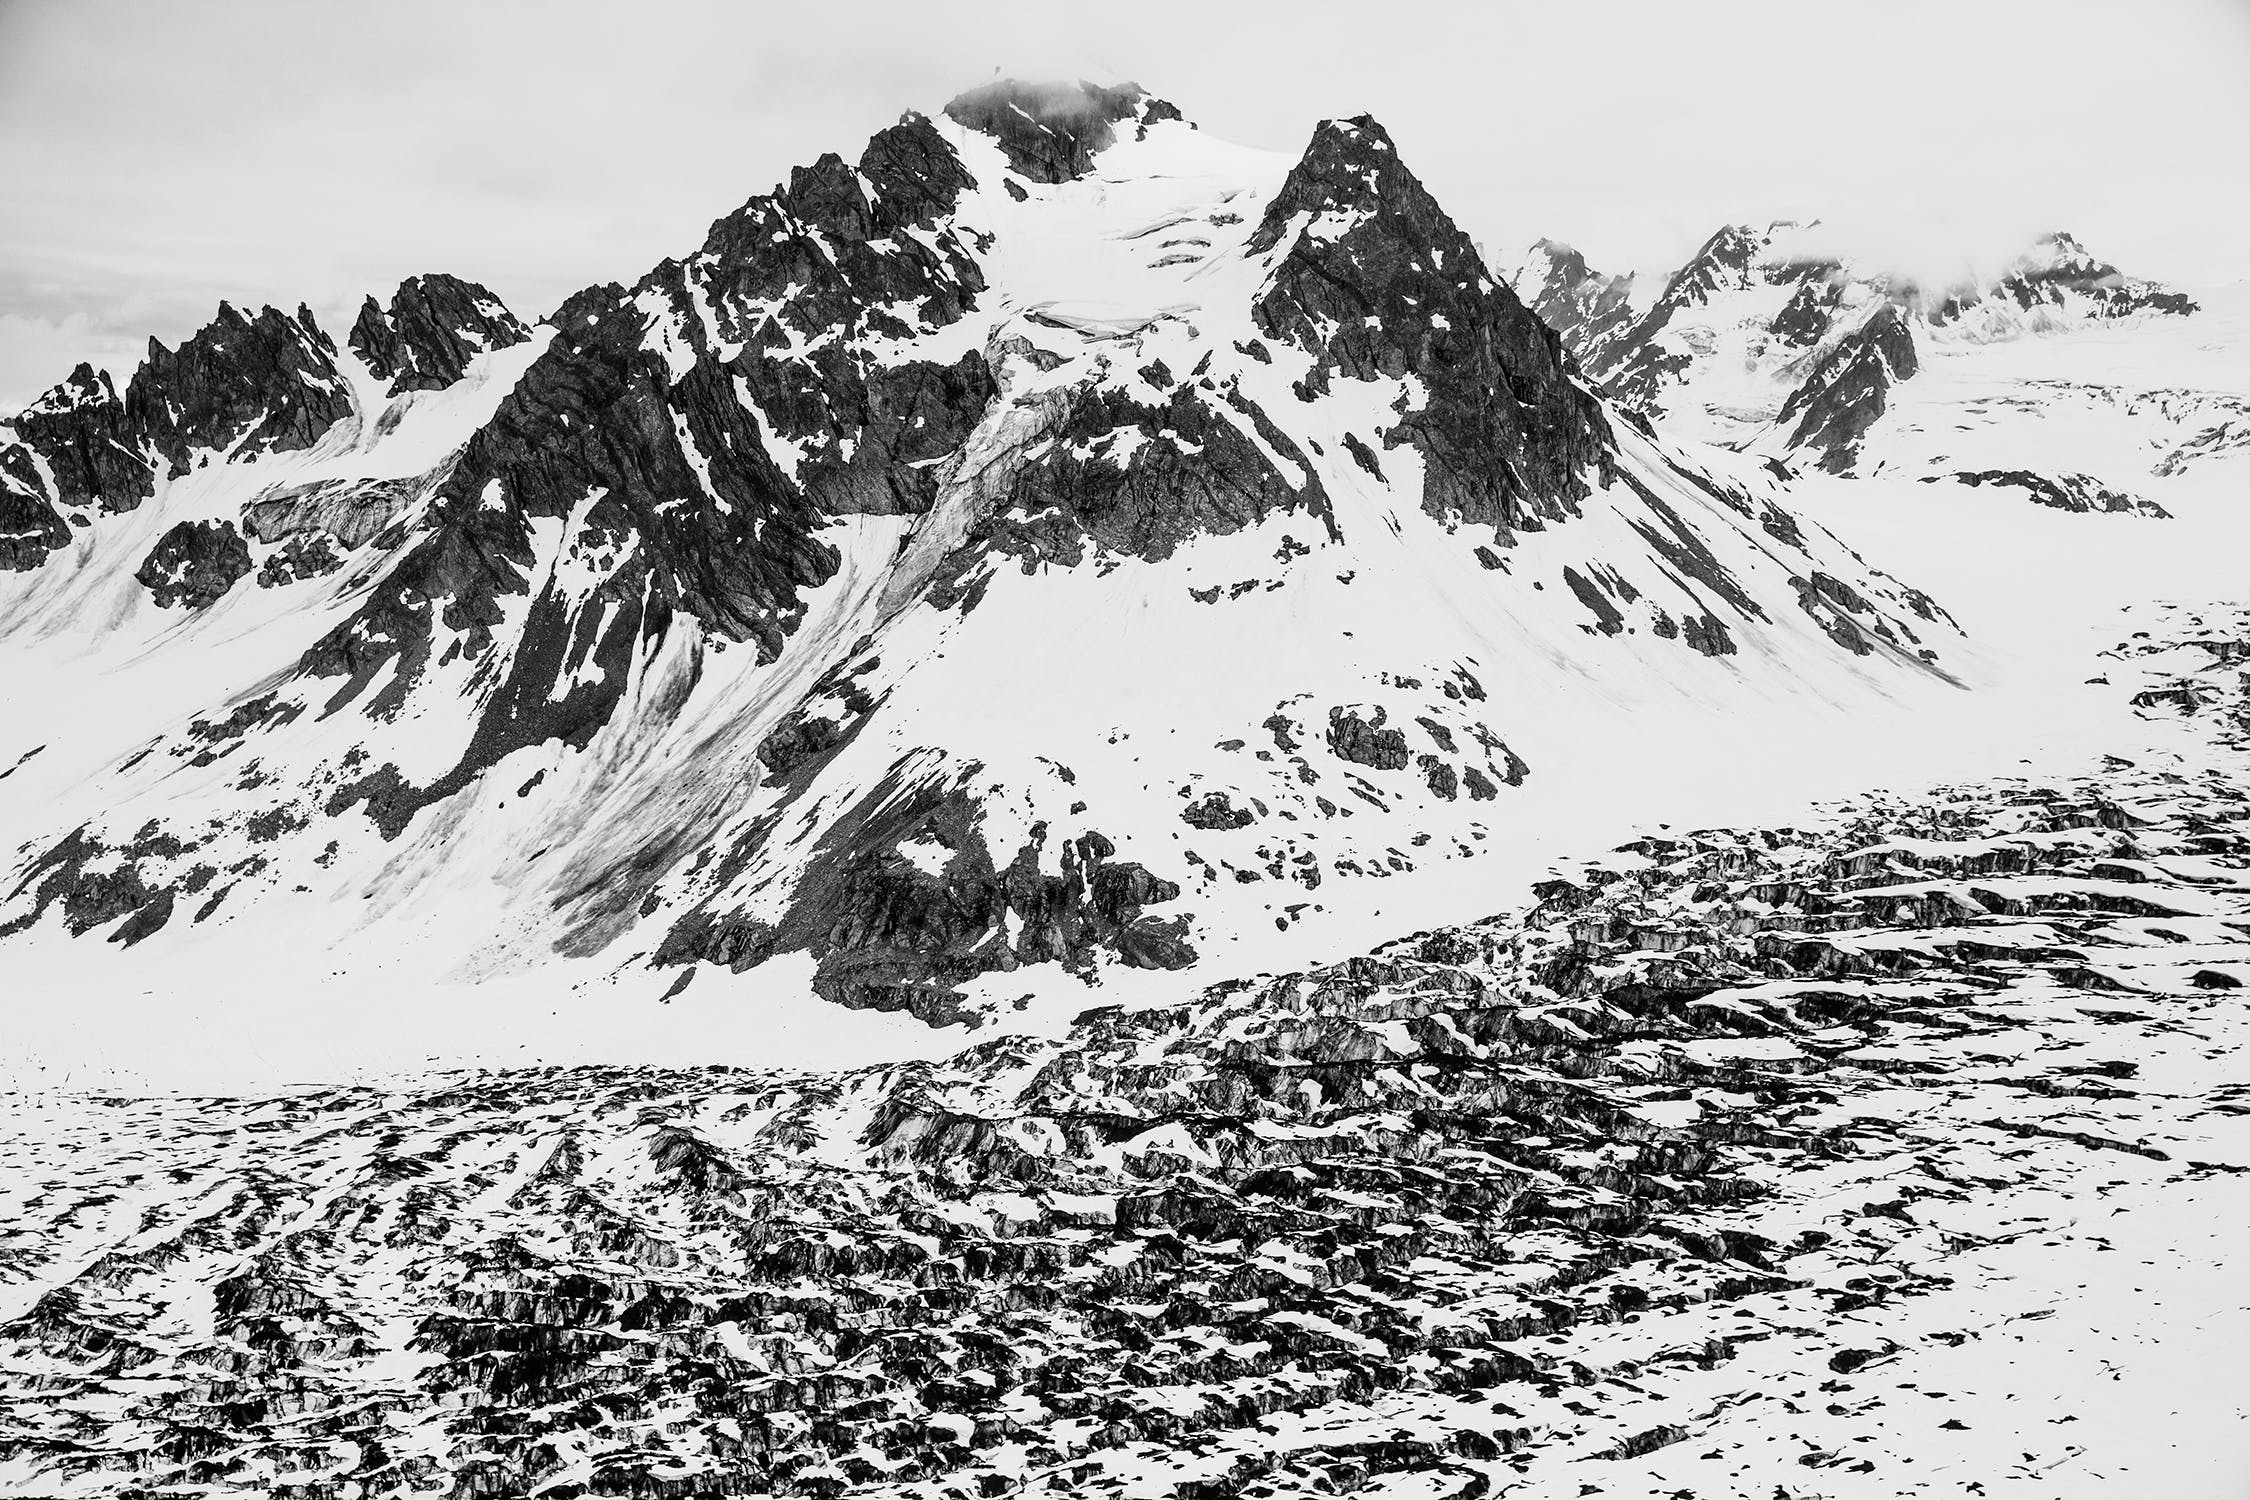 Black and white photo of a mountain and boulder field covered in snow.